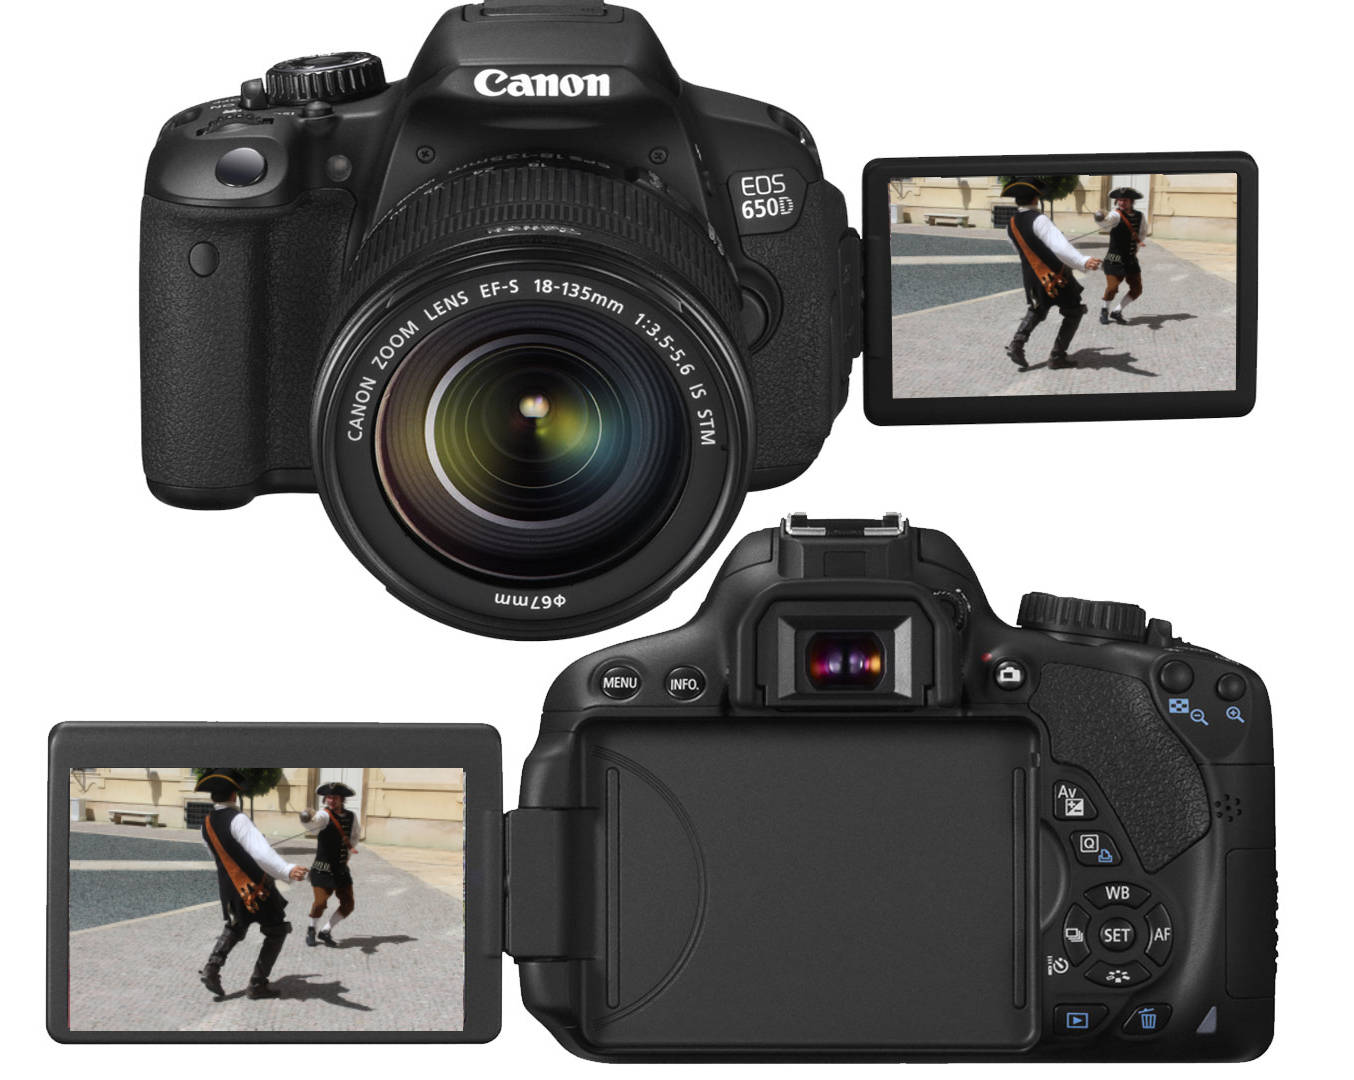 Canon Digital SLR Cameras That Existed In 2013 Smart